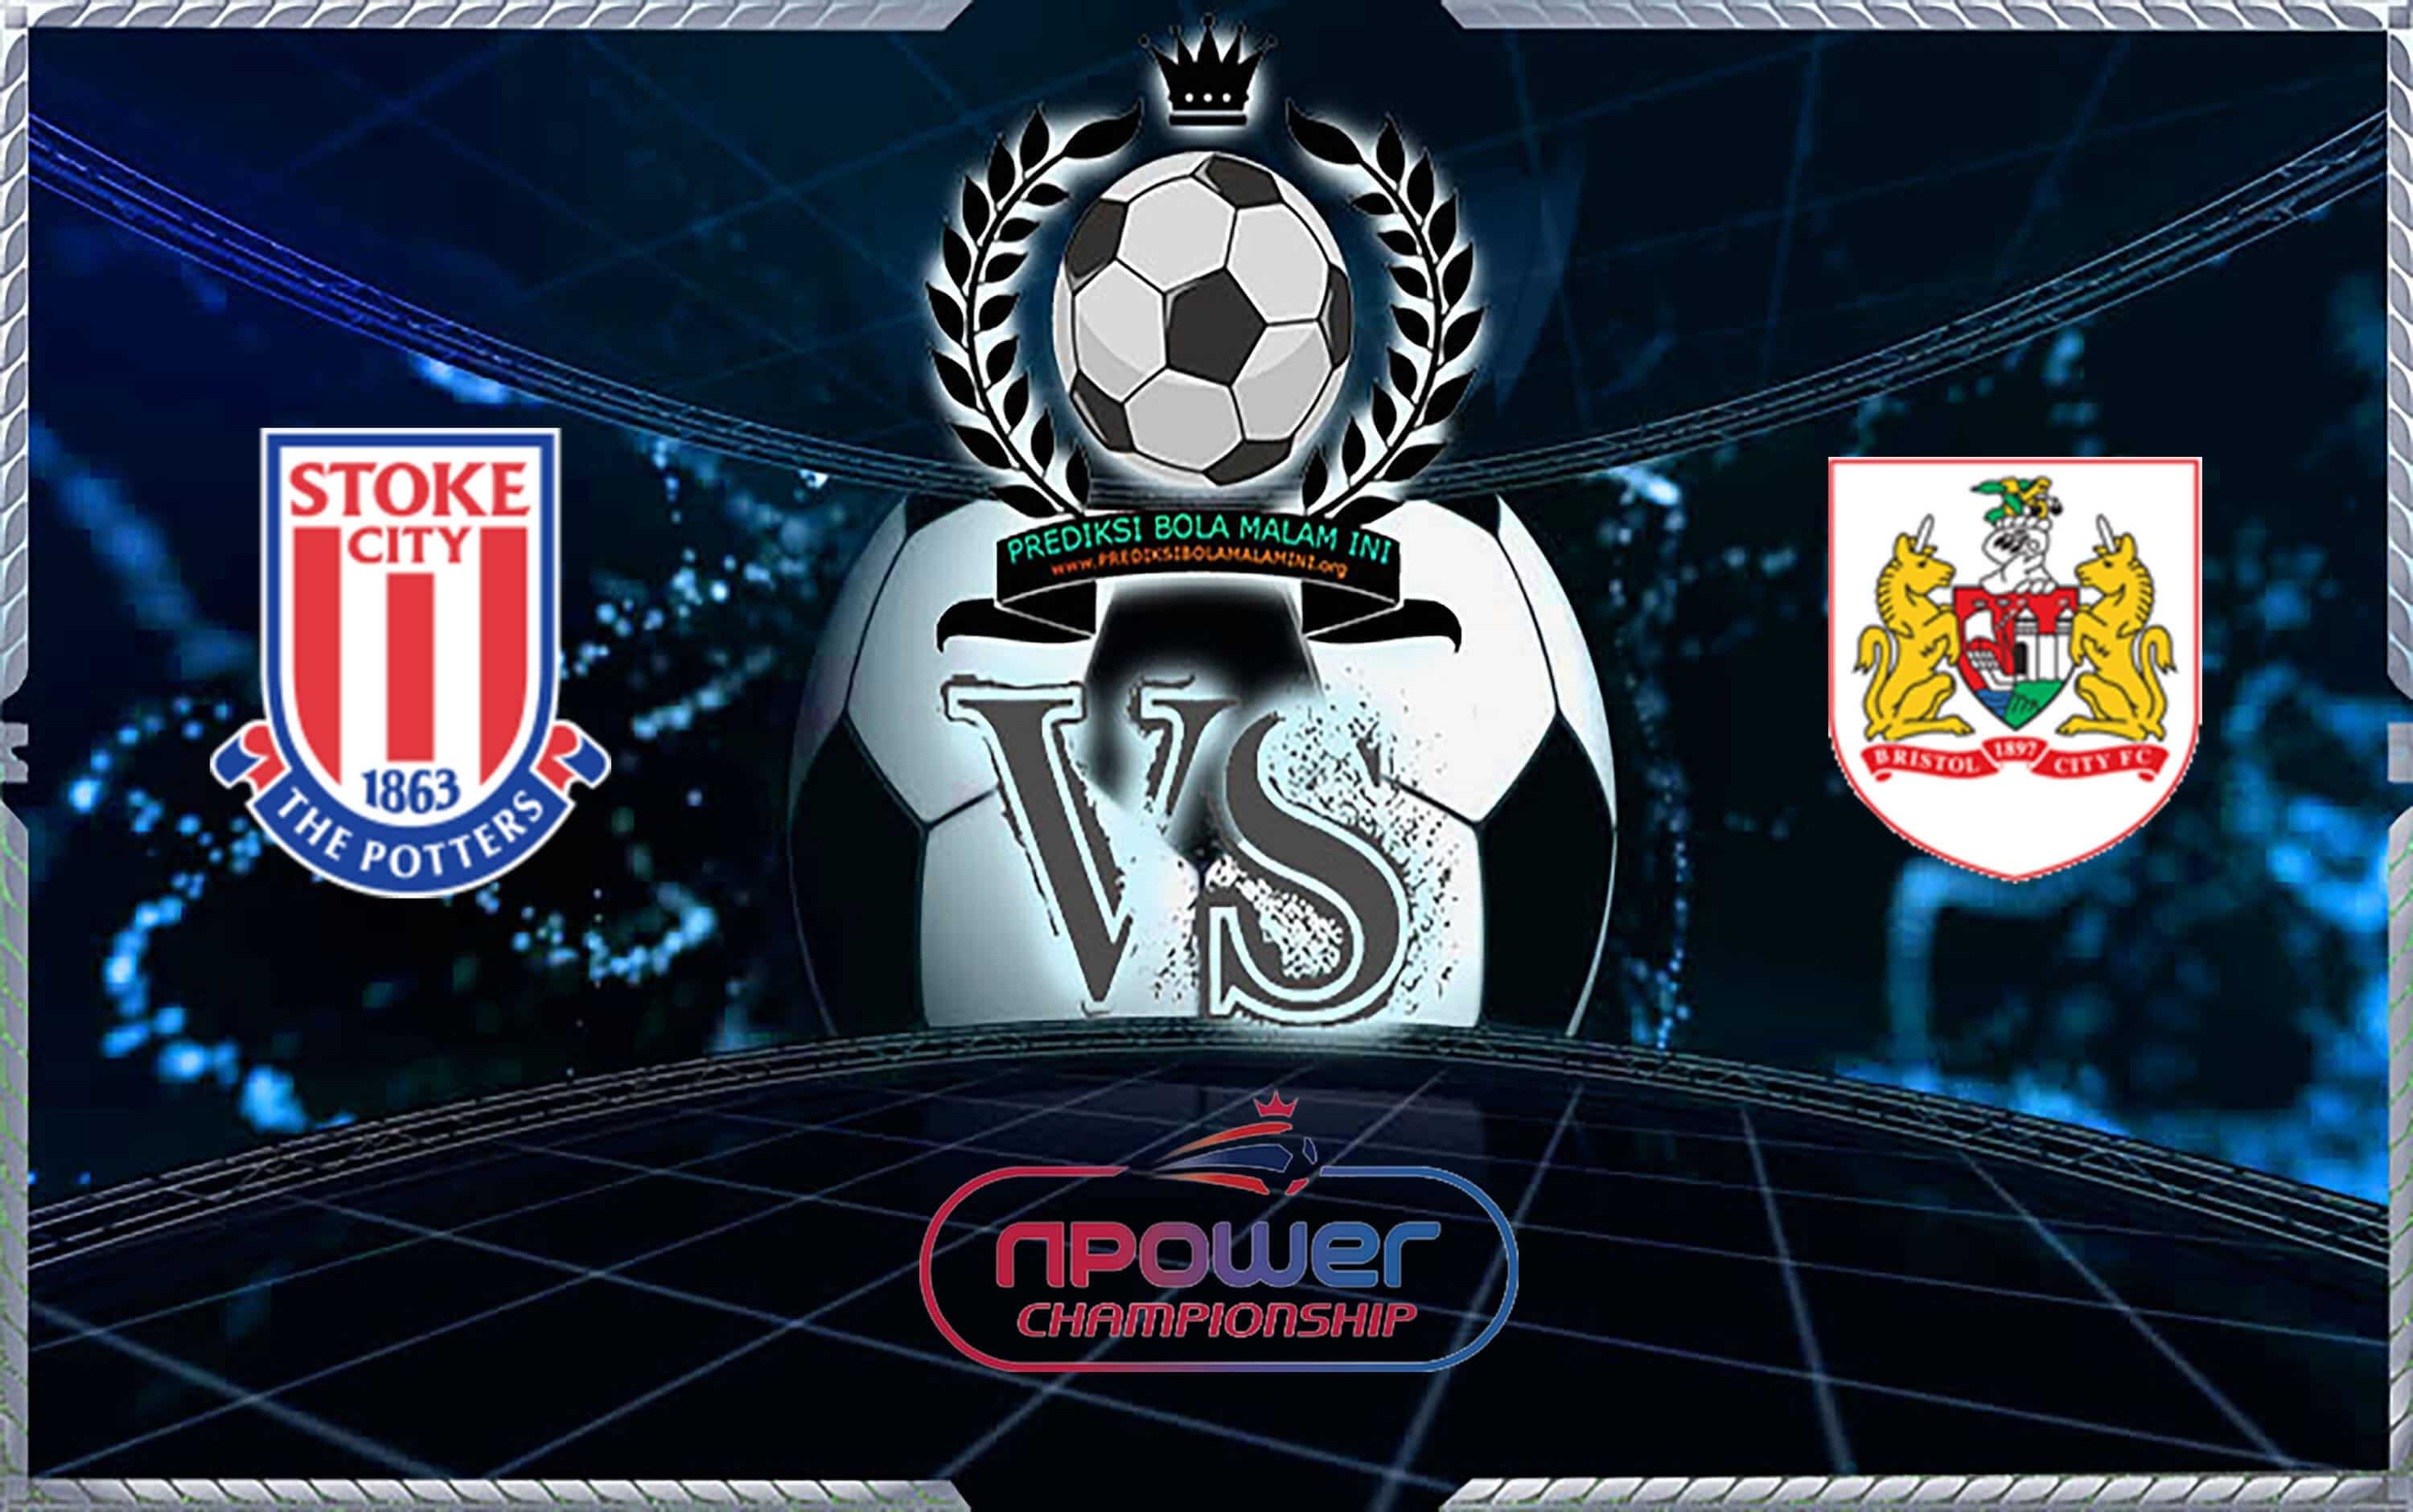 Prediksi Shoes Stoke City vs Bristol City 14 September 2019